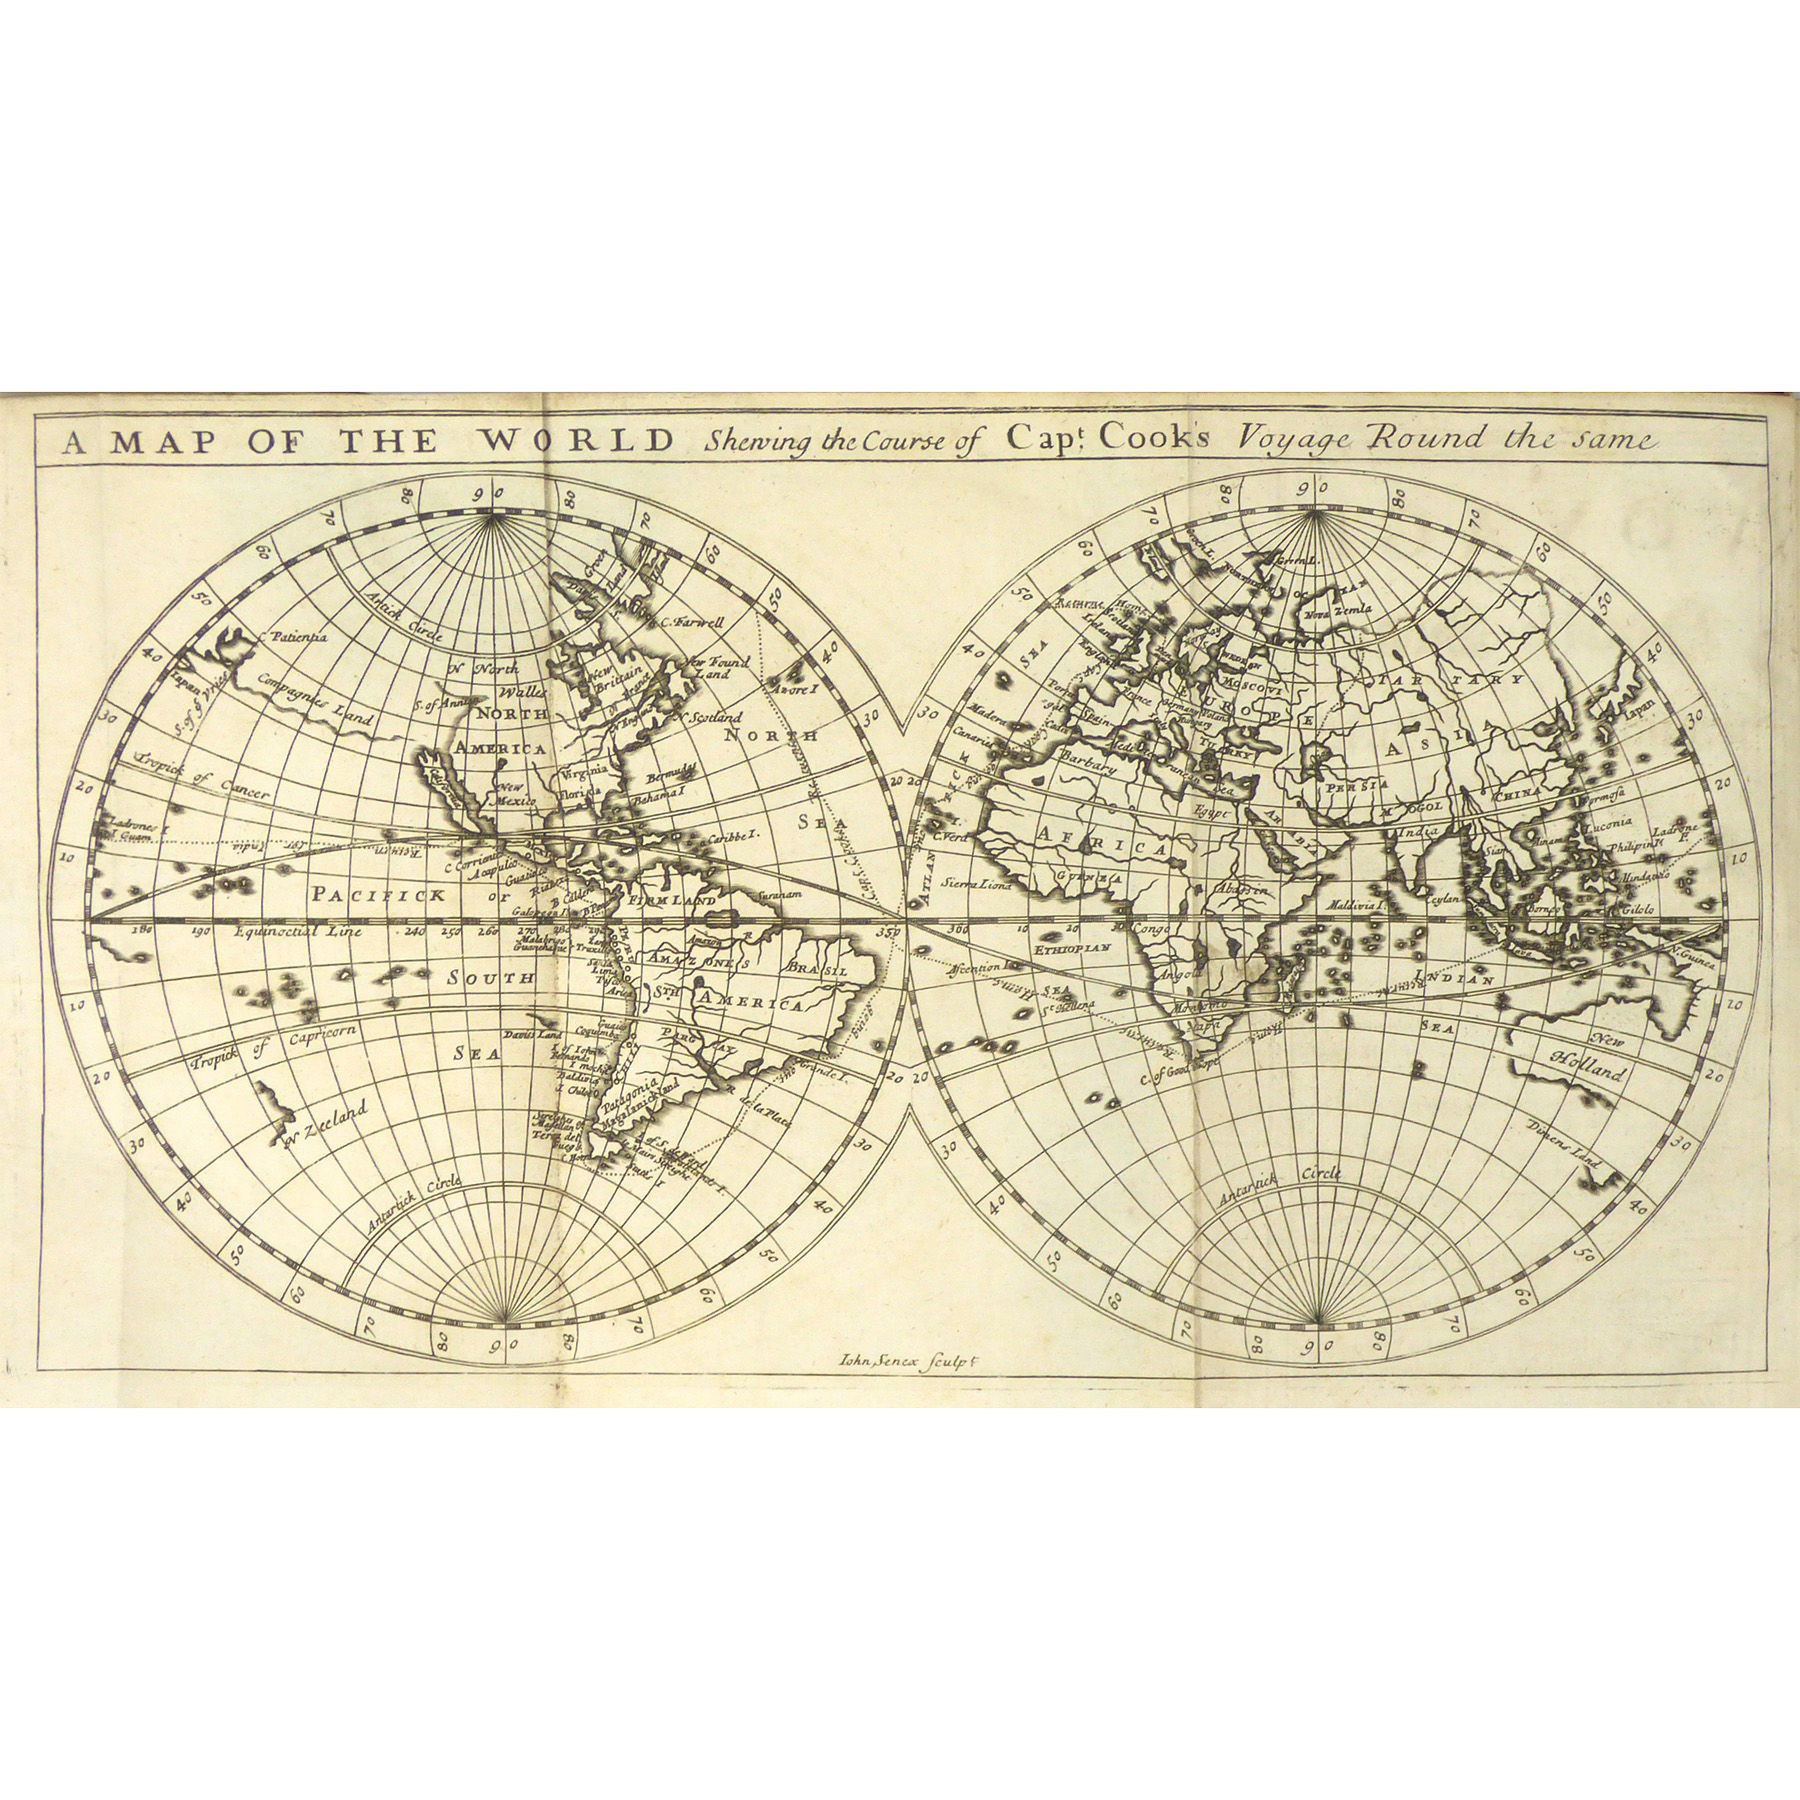 A Voyage to the South Sea, and Round the World, Perform'd in the Years 1708, 1709, 1710, and 1711, by the Ships Duke and Dutchess of Bristol. Containing a Journal of all memorable Transactions during the said Voyage; the Winds, Currents, and Variation of the Compass; the taking of the Towns of Puna and Guayaquil, and several Prizes, one of which a rich Acapulco Ship. A Description of the American Coasts, from Tierra del Fuego in the South, to California in the North, (from the Coasting-Pilot, a Spanish Manuscript). ………Wherein an Account is given of Mr. Alexander Selkirk, his Manner of living and taming some wild beasts during the four Years and four Months he liv'd upon the uninhabited Island of Juan Fernandes. (photo 1)